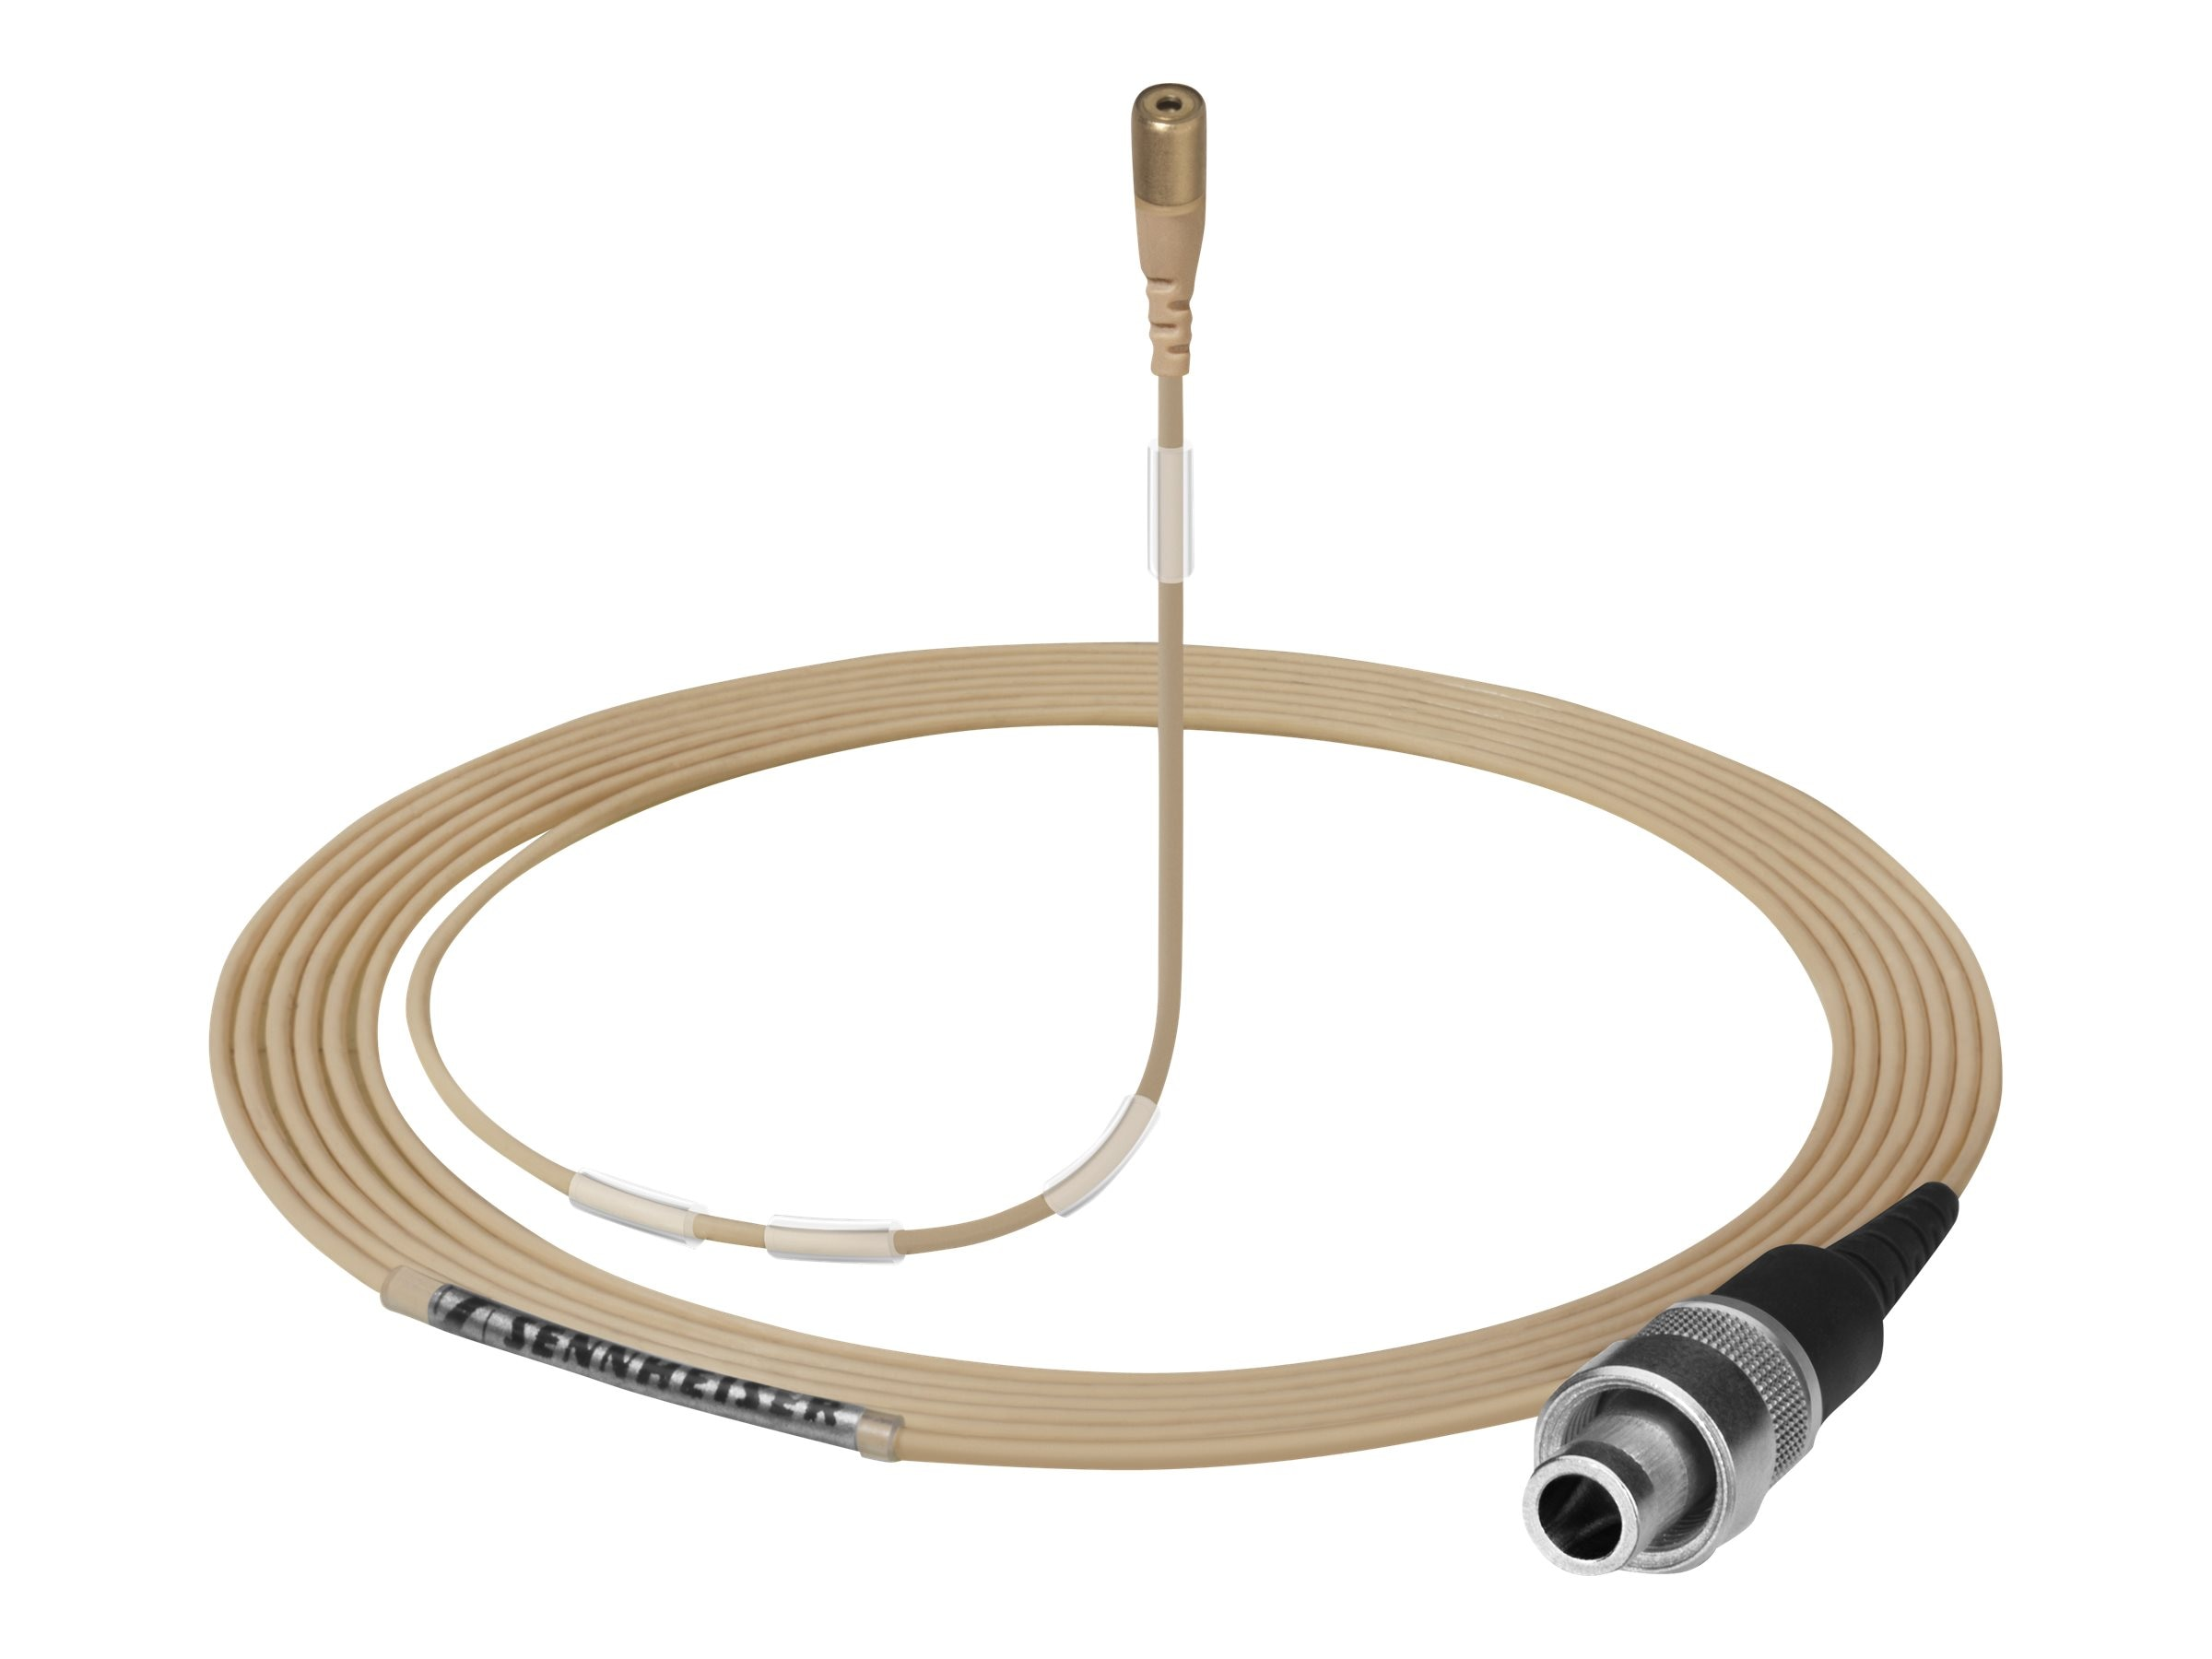 Sennheiser MKE 1-5-M Sound Pro Clip-On Microphone Open-ended Cable, 3m, Light Beige, Paintable